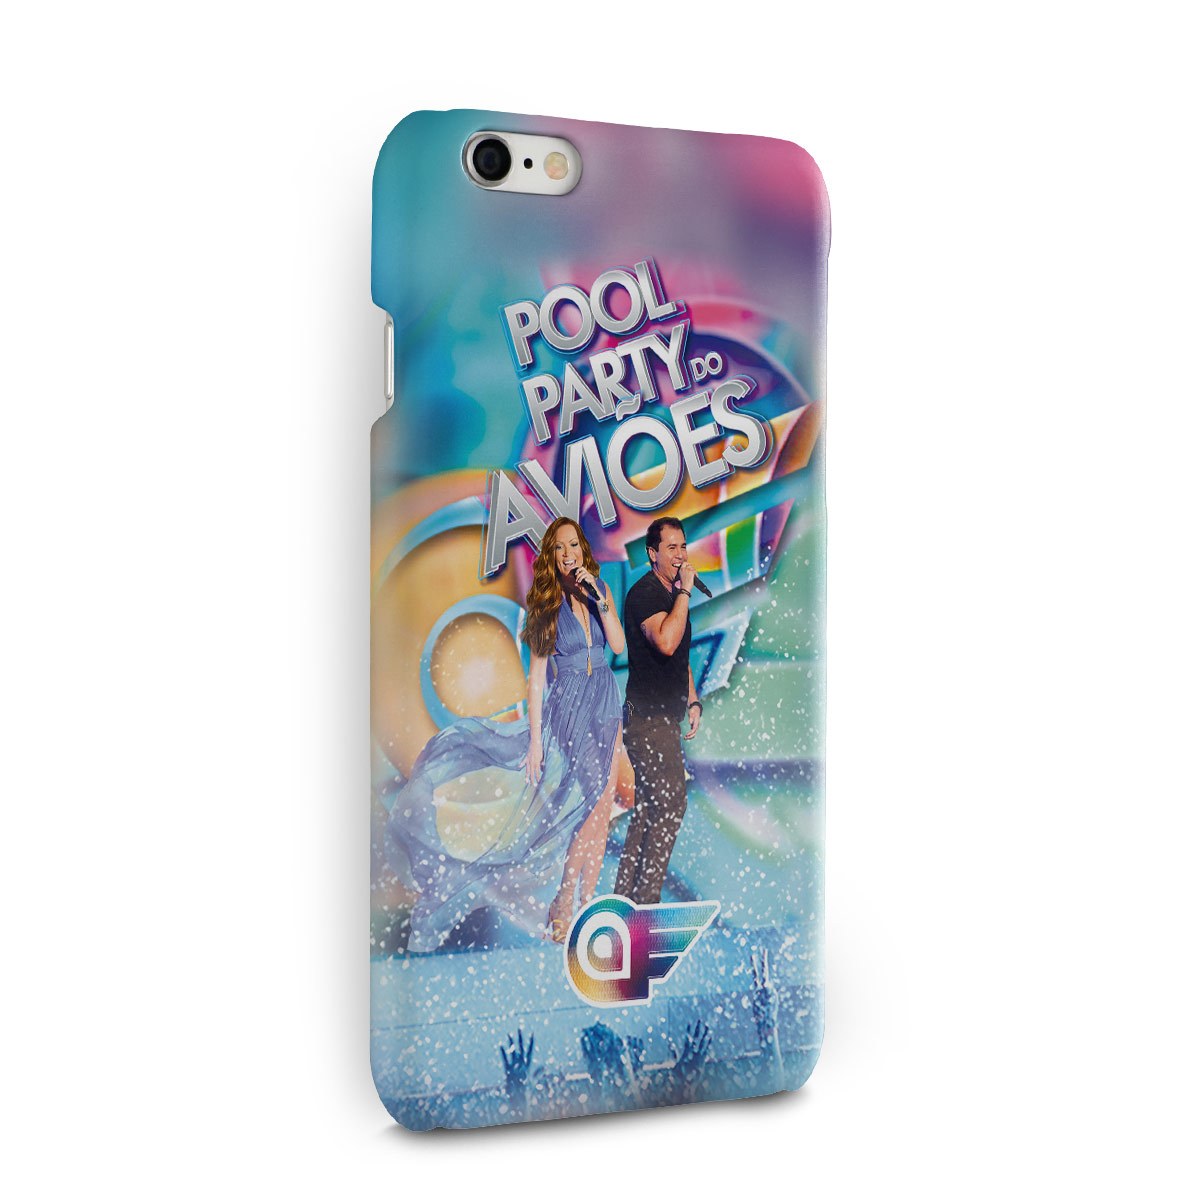 Capa para iPhone 6/6S Aviões do Forró Capa Pool Party